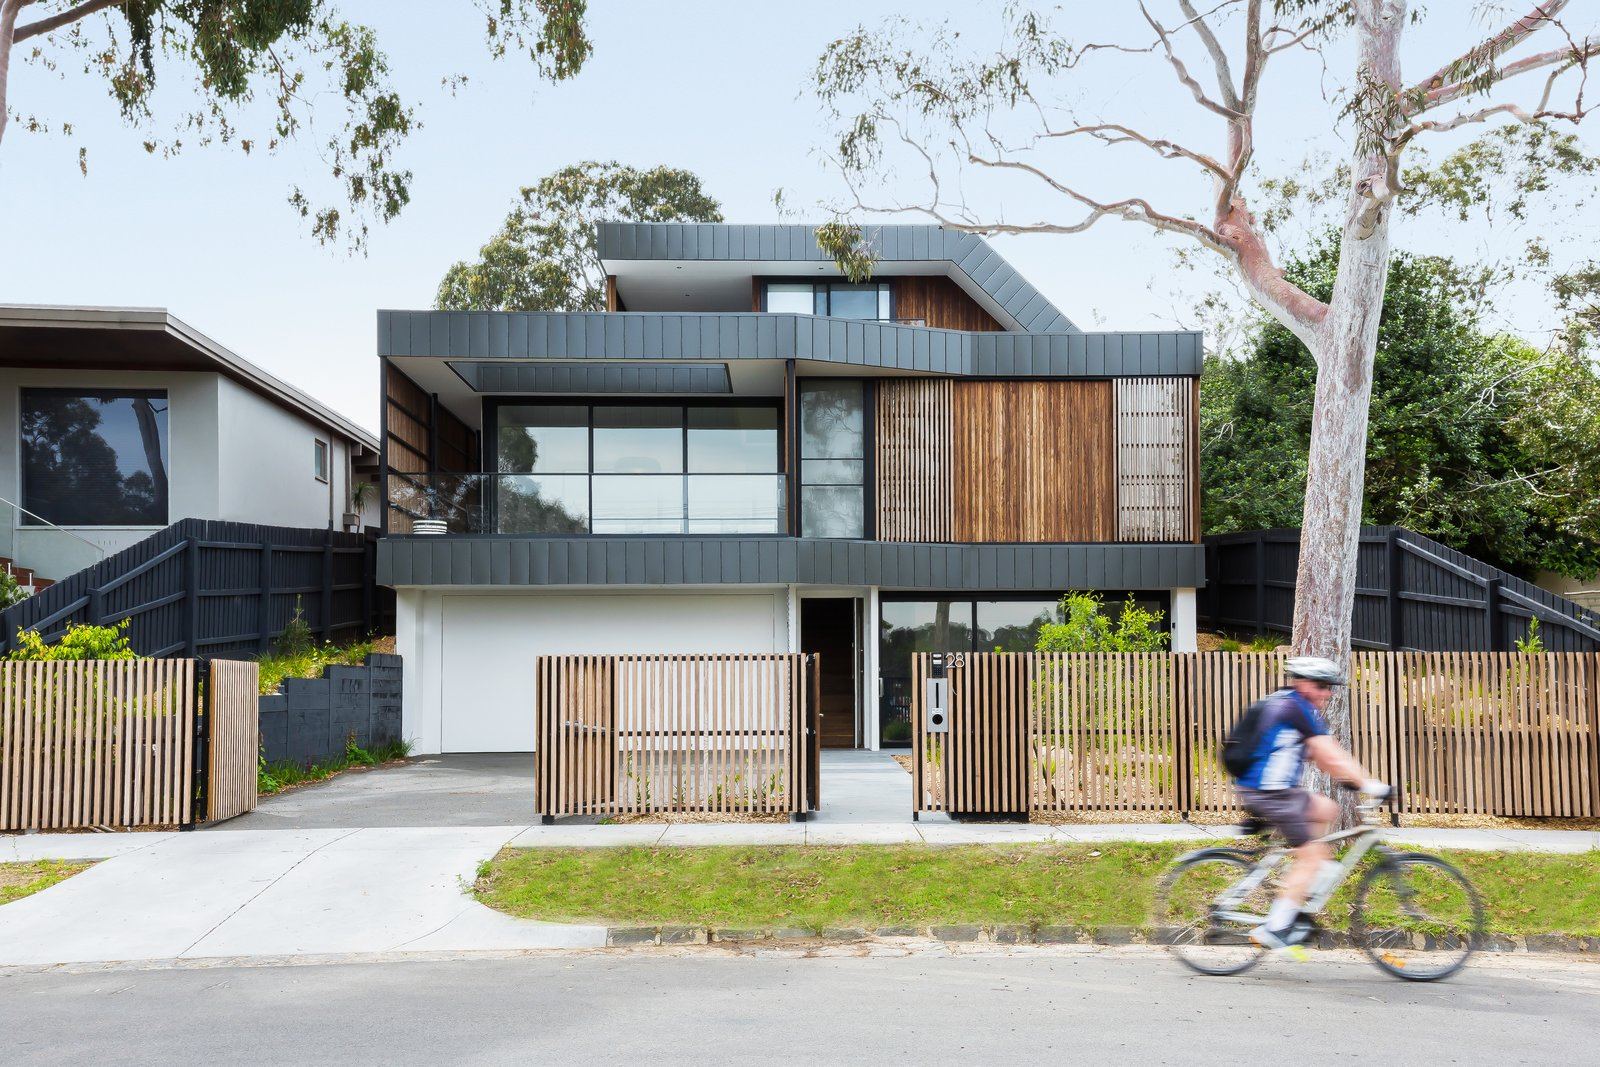 Exterior, House, Flat, Metal, Saltbox, Wood, and Metal  Exterior Metal Saltbox Photos from A Multi-Generational Australian Home Basks in Park Views